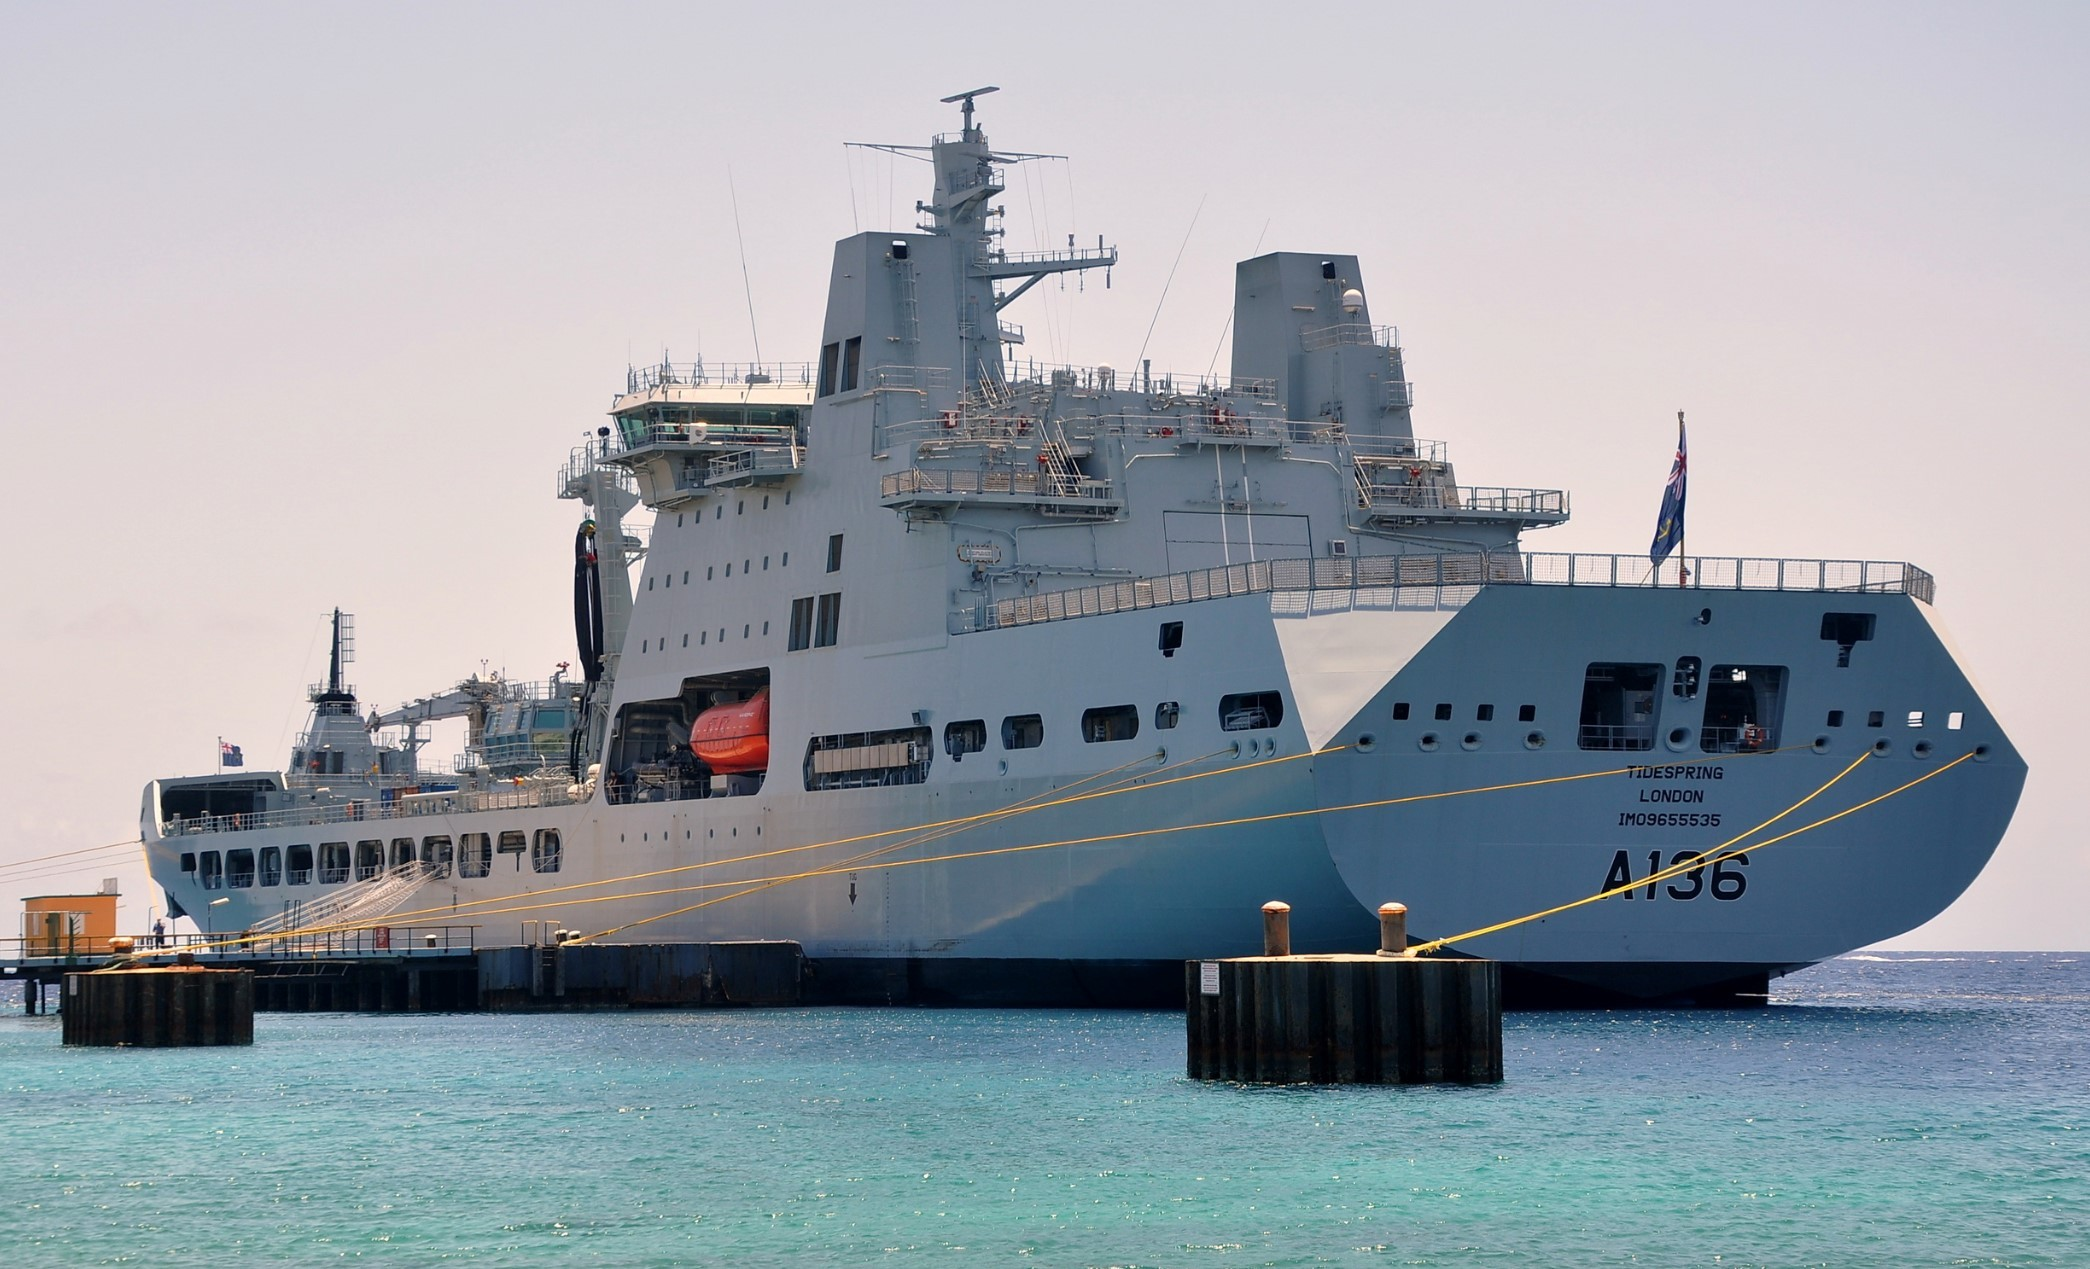 RFA Tidespring has sailed to undergo her final evaluation trials before joining the Fleet